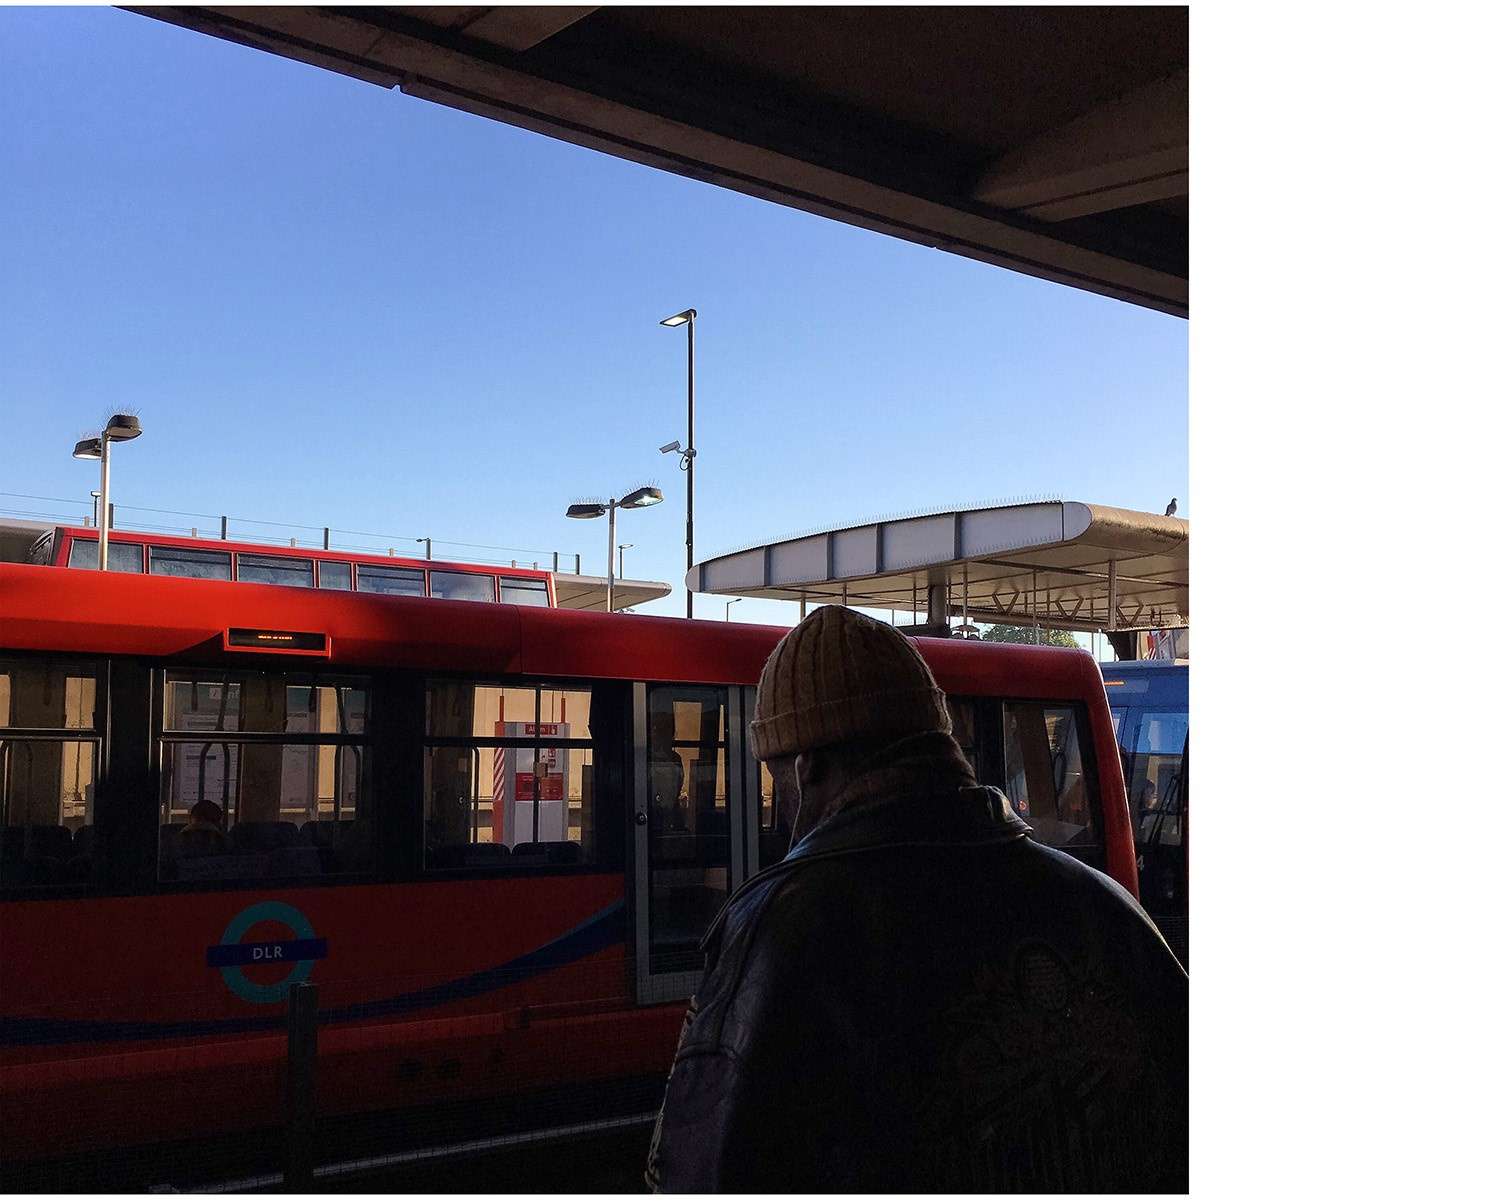 Man waiting for red DLR tube on sunny day with blue skies